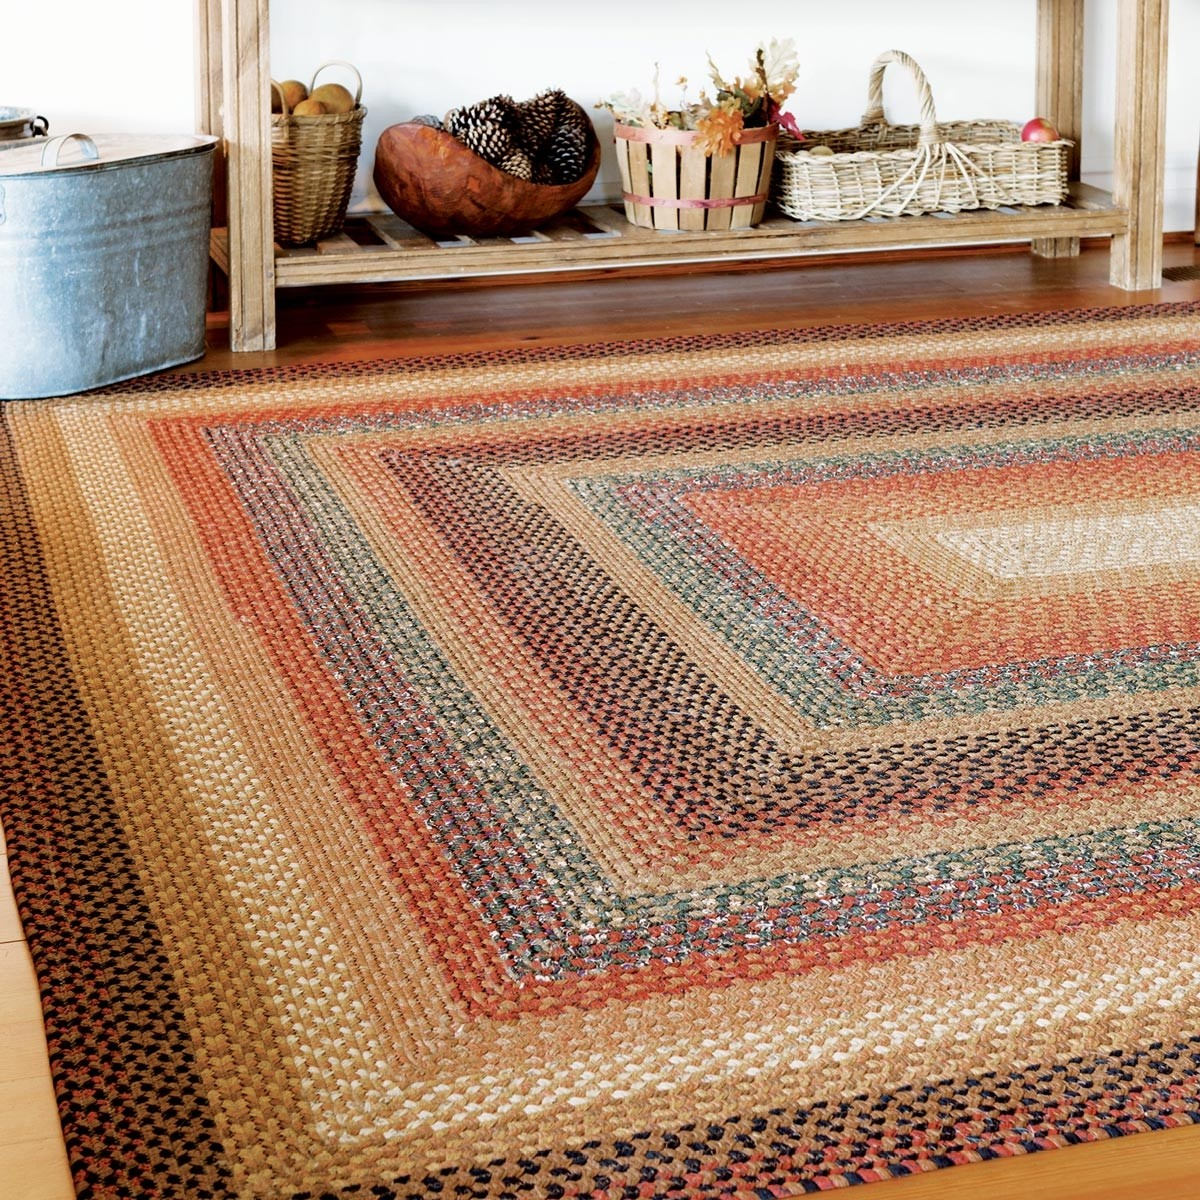 Buy Peppercorn Multi Color Cotton Braided Rugs Online Homespice